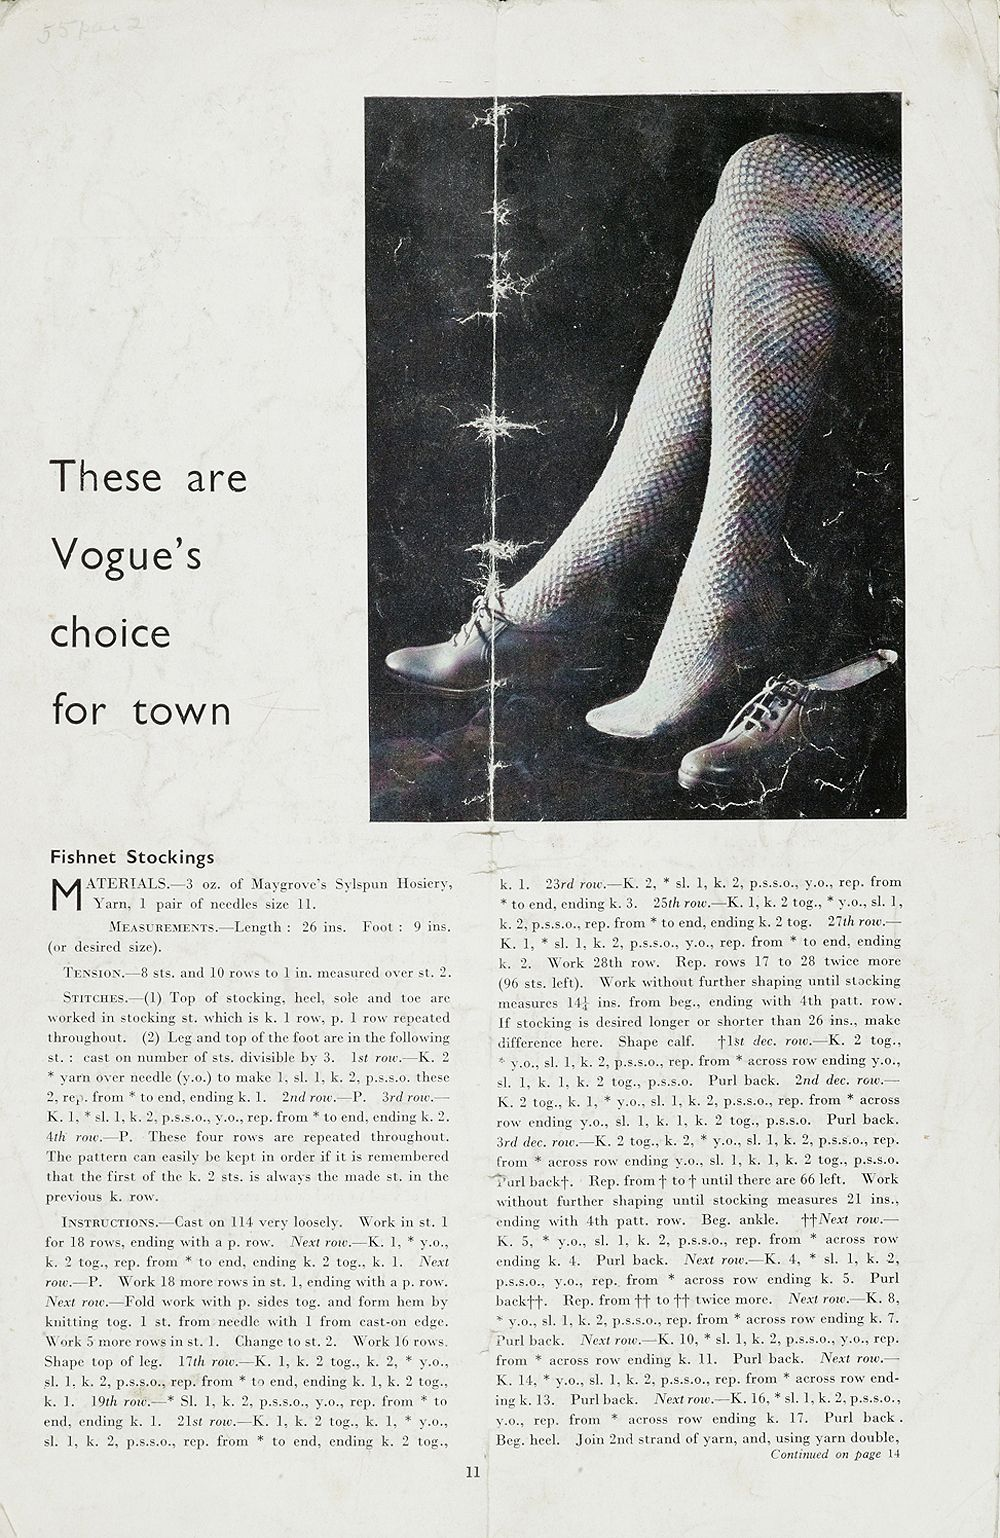 Free Vintage 1940s Fishnet Stockings Knitting Pattern And Tutorial